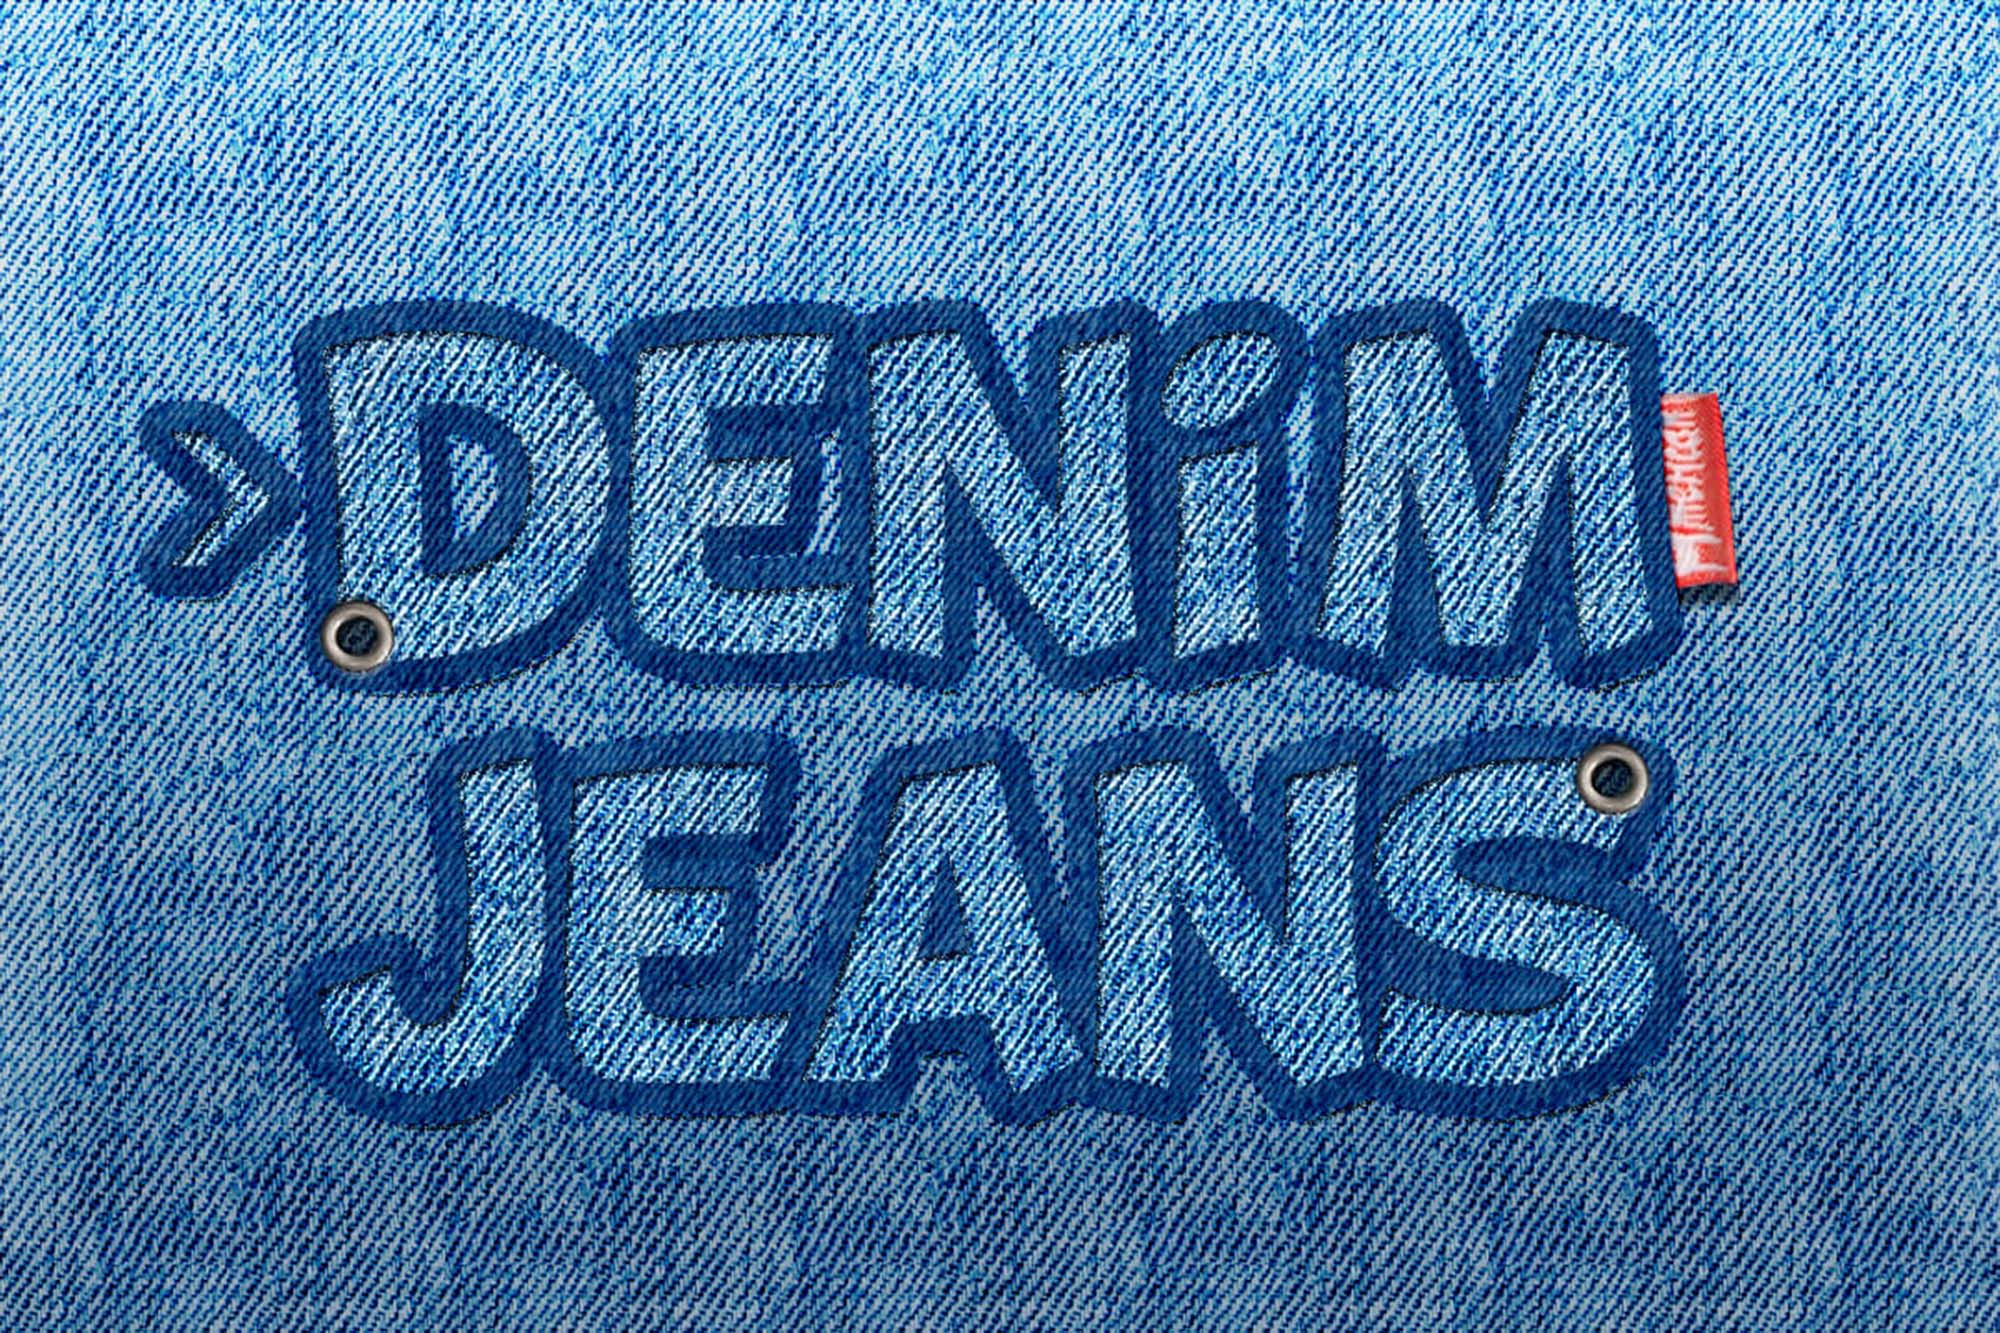 Free Jeans Photoshop Text Effect